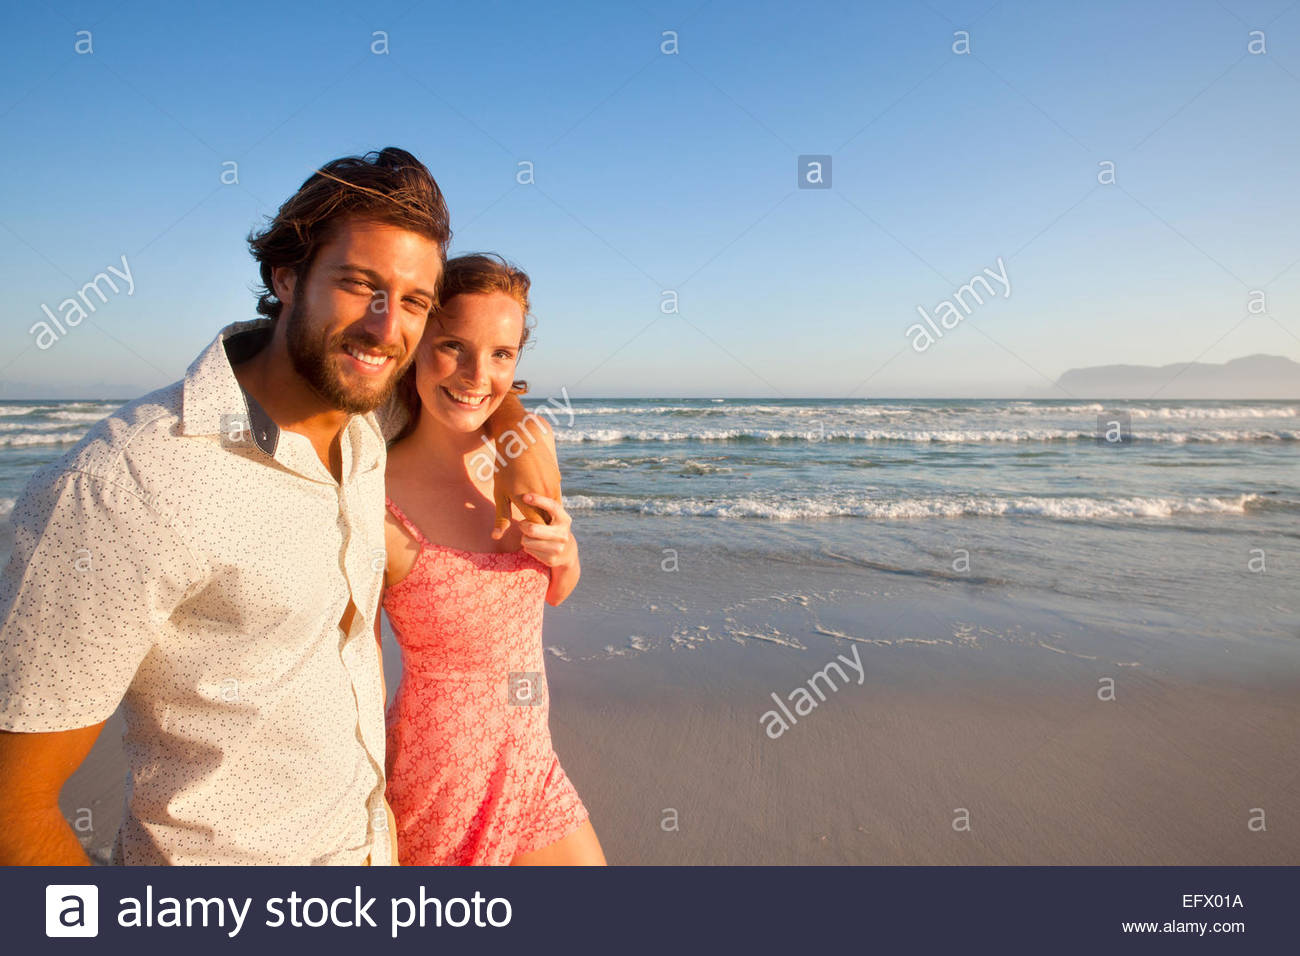 Smiling couple looking at camera, man with arm round woman, walking along sunny beach - Stock Image